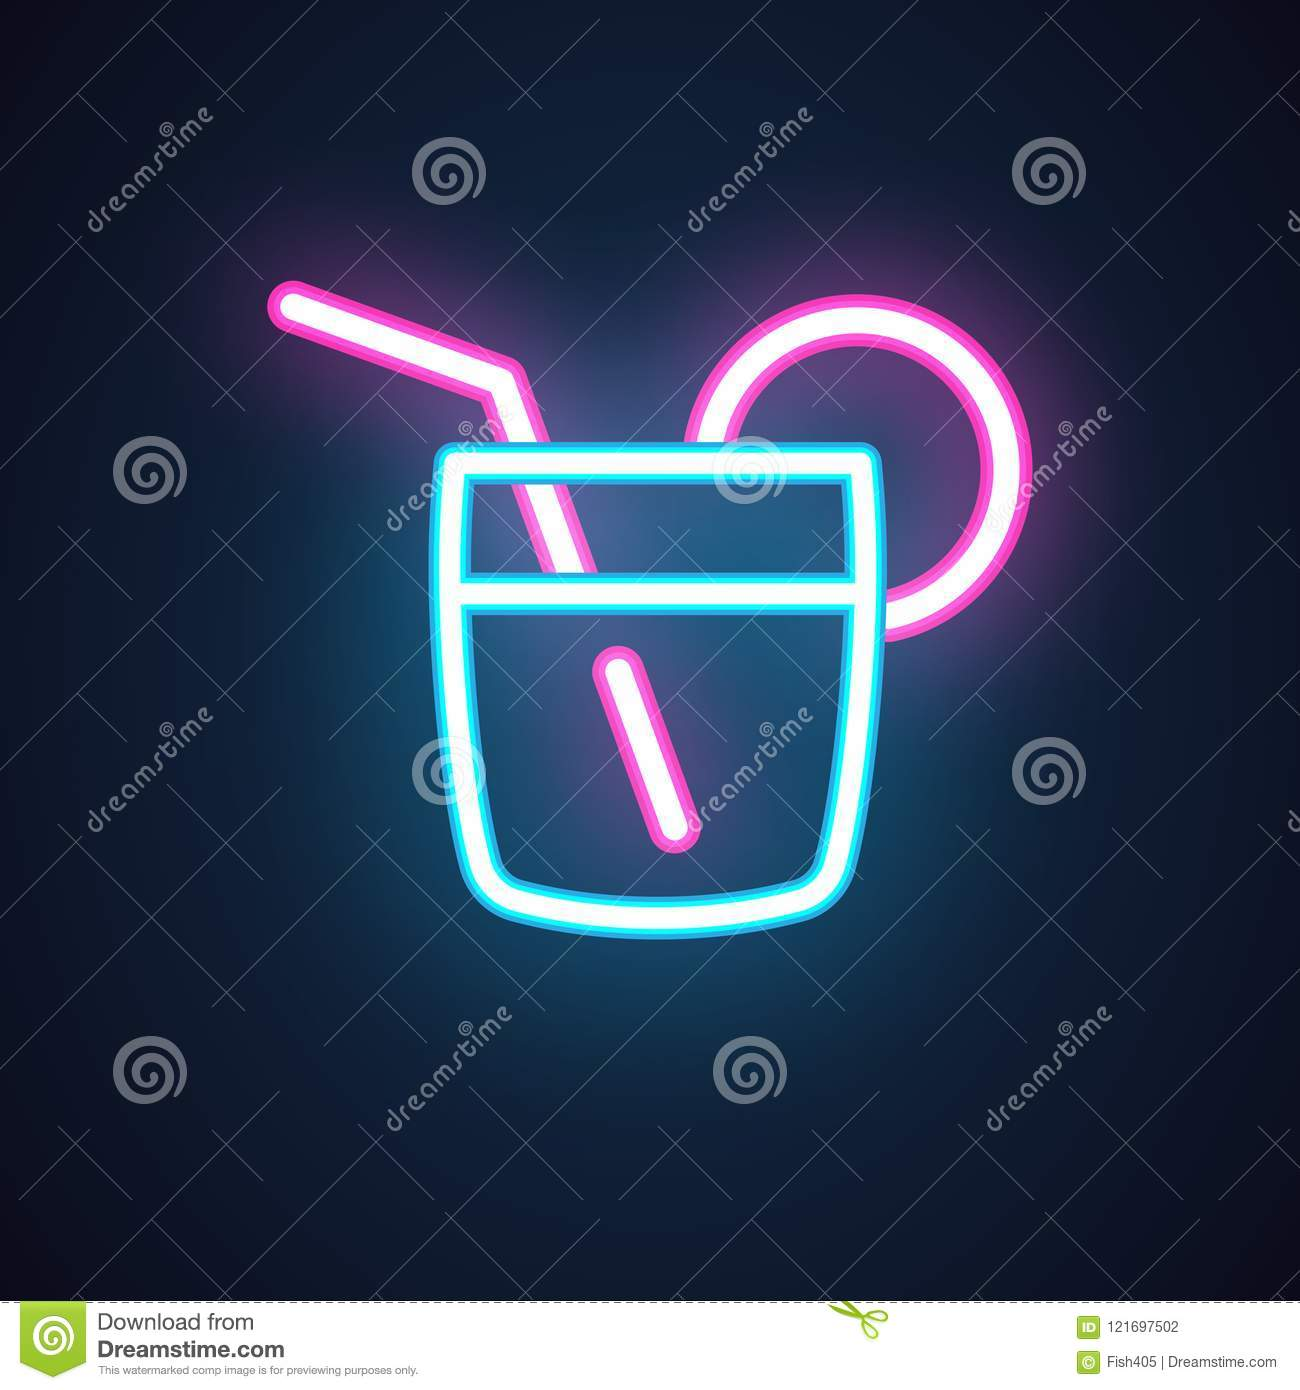 Cocktail Neon Icon Drink In Glass With Straw Alcohol Shot Illuminated Label For Parties Event Bar Restaurant Cafe Stock Vector Illustration Of Holiday Motel 121697502